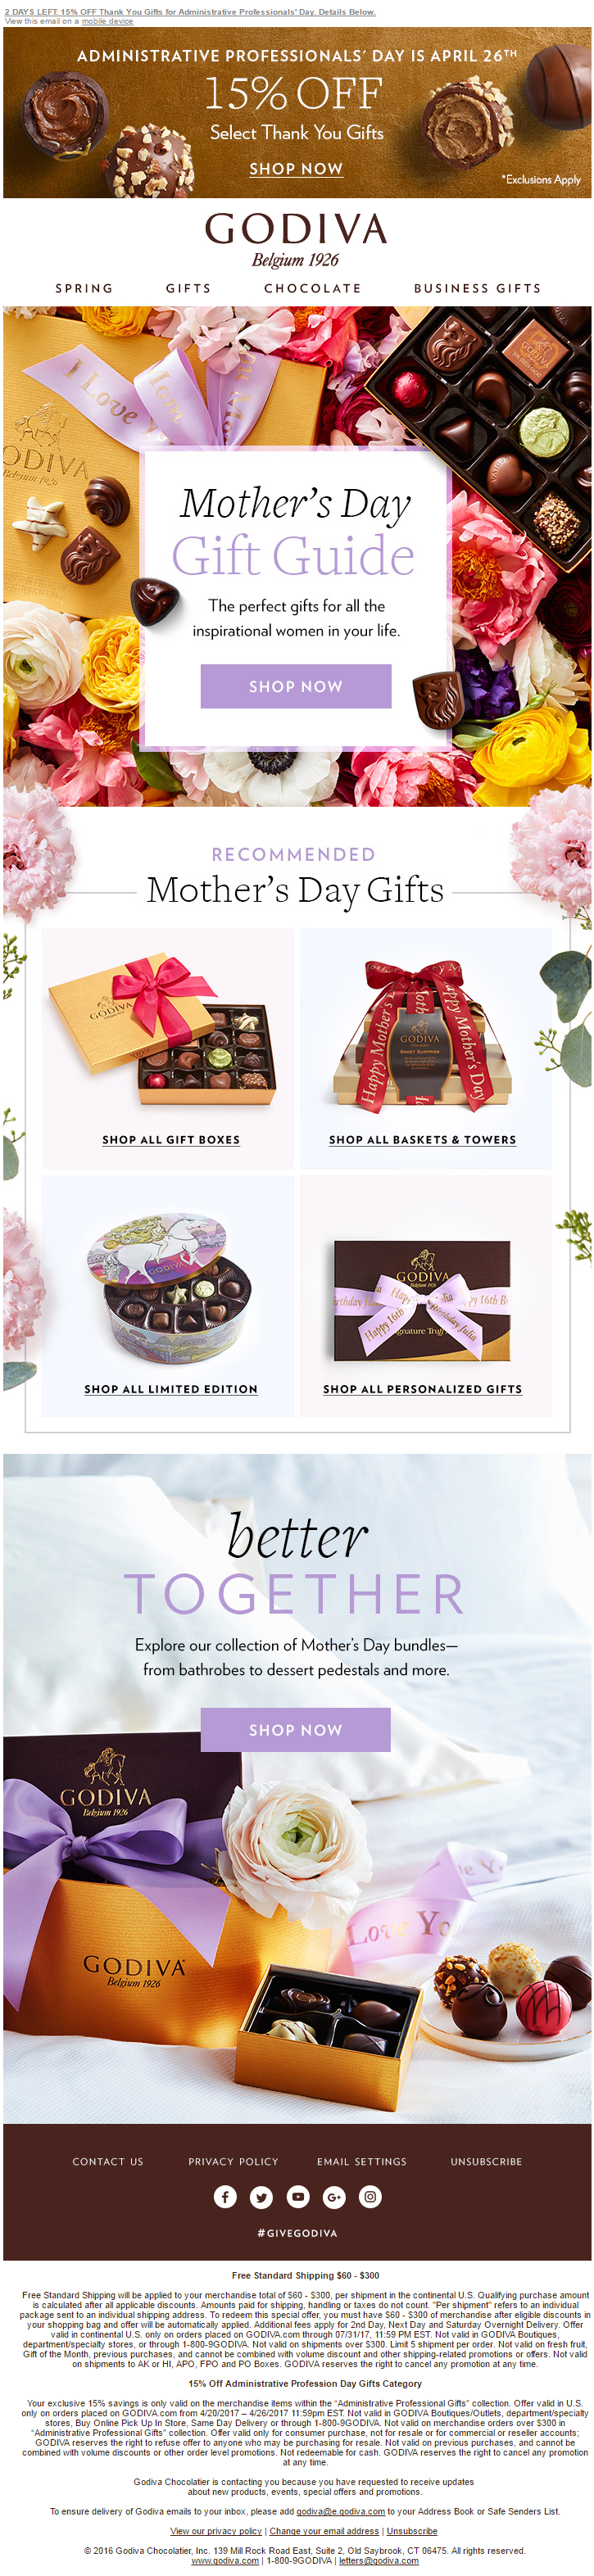 GODIVA - Mother's Day Email